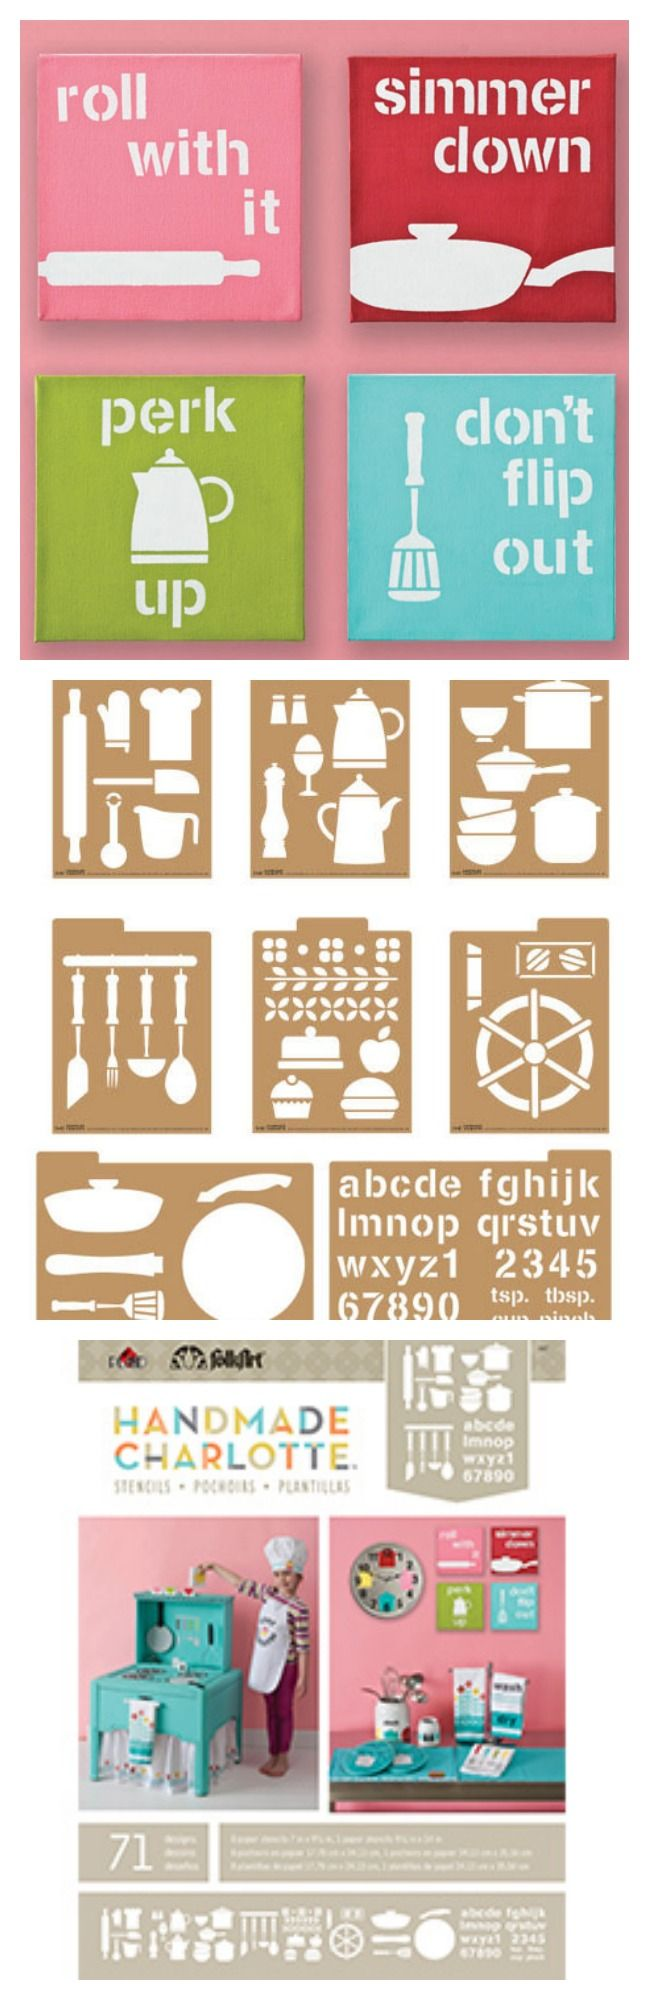 Handmade Charlotte die-cut, reusable kraft paper stencils - functional, family-friendly designs make it easy to craft. modern retro icons--68 designs--to decorate everything from cookbooks and recipe cards to gifts from the kitchen.  #plaidcrafts #crafting #diy